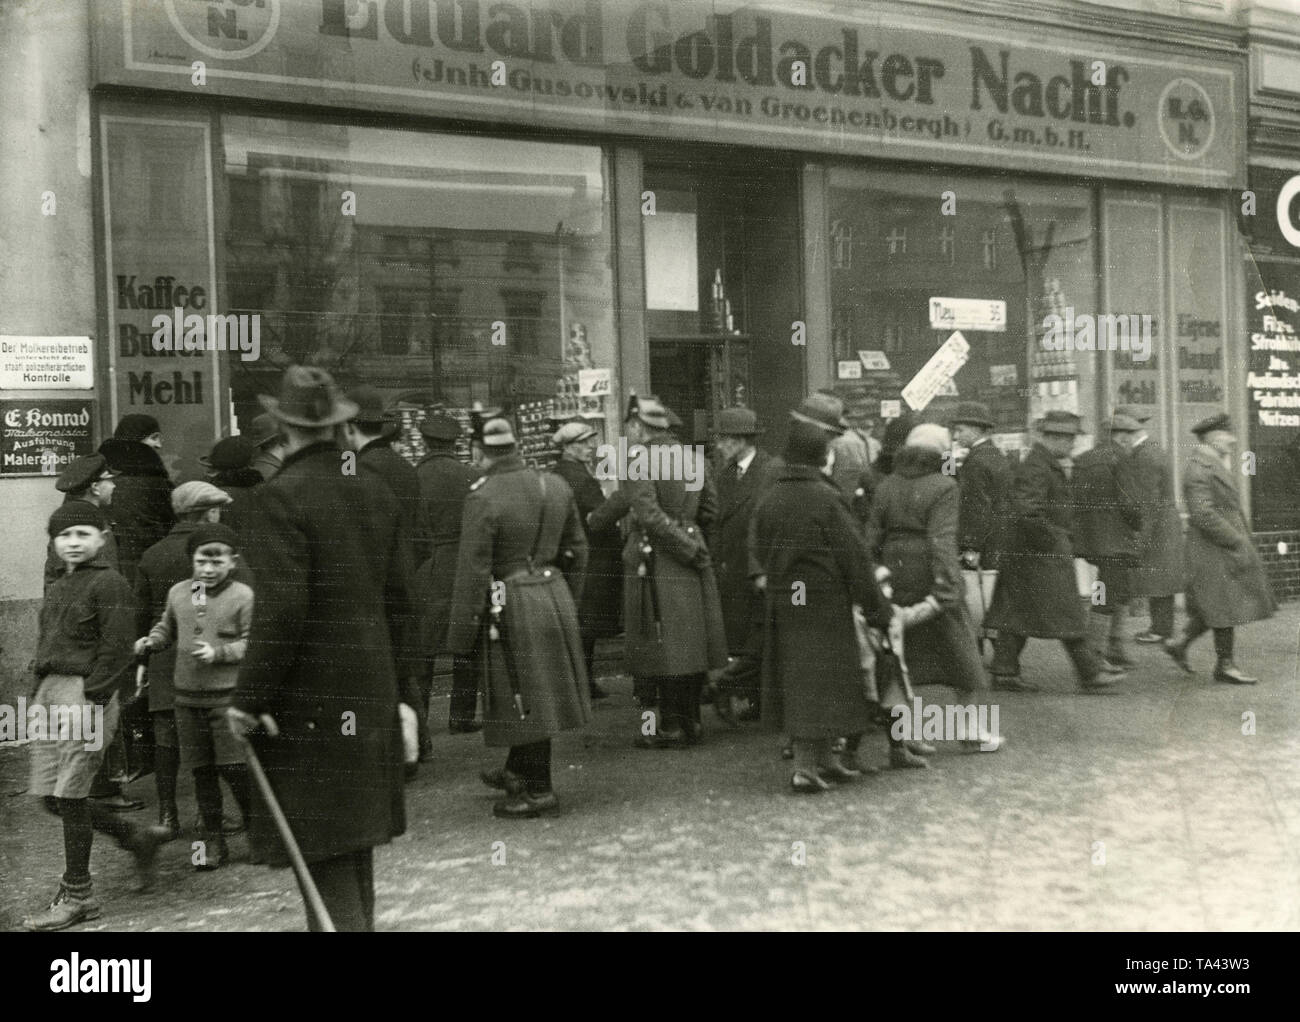 Looting at the grocery store Eduard Goldacker Nachf. (owners Gusowski and van Groenenbergh) GmbH during the Great Depression. Outside the store are policemen and onlookers. The Jewish owner had to close the business in 1933. - Stock Image